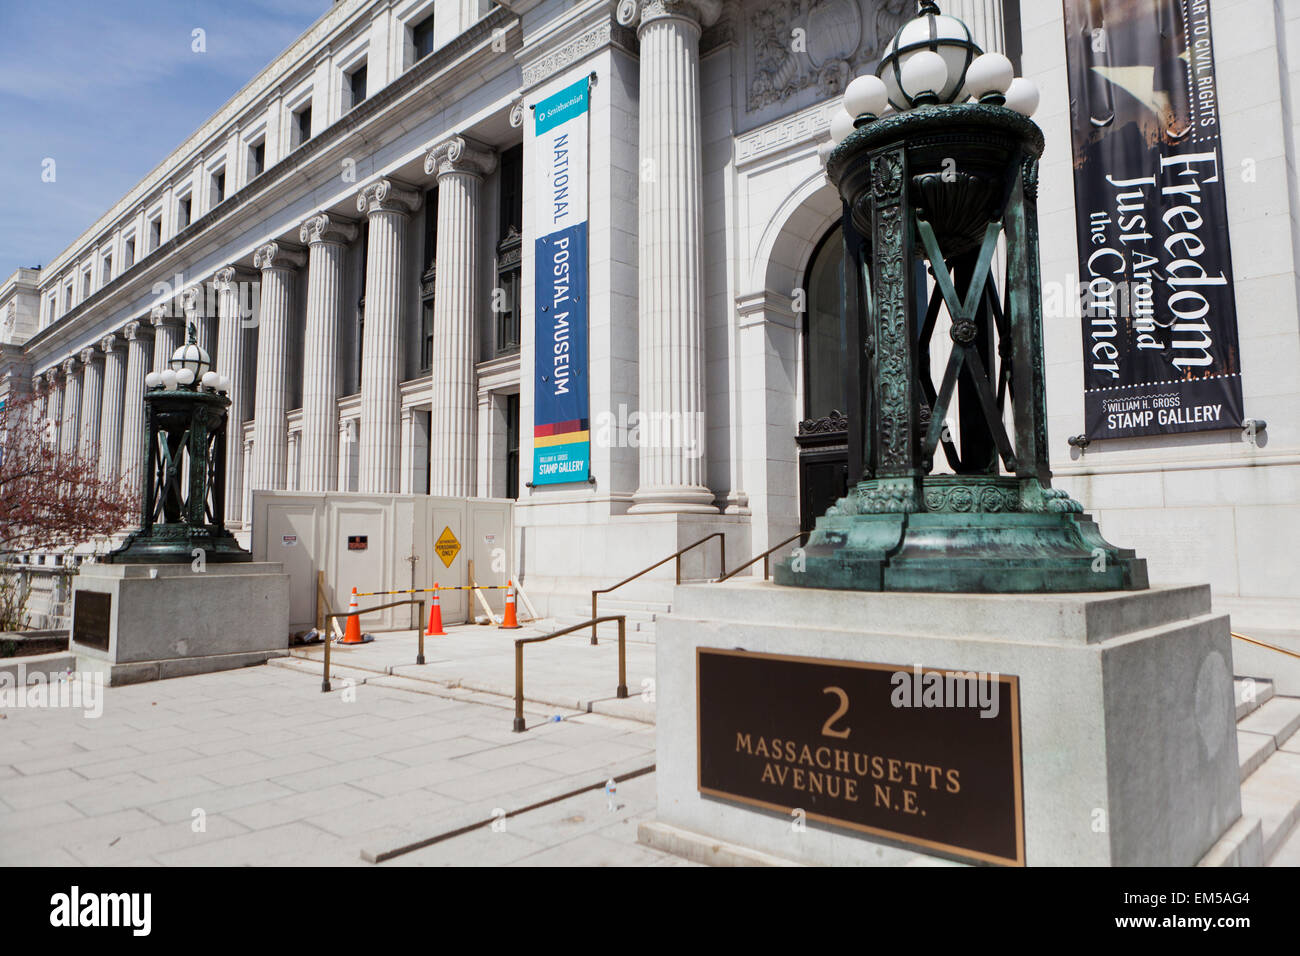 The US Postal Museum, Smithsonian Institution - Washington, DC USA - Stock Image